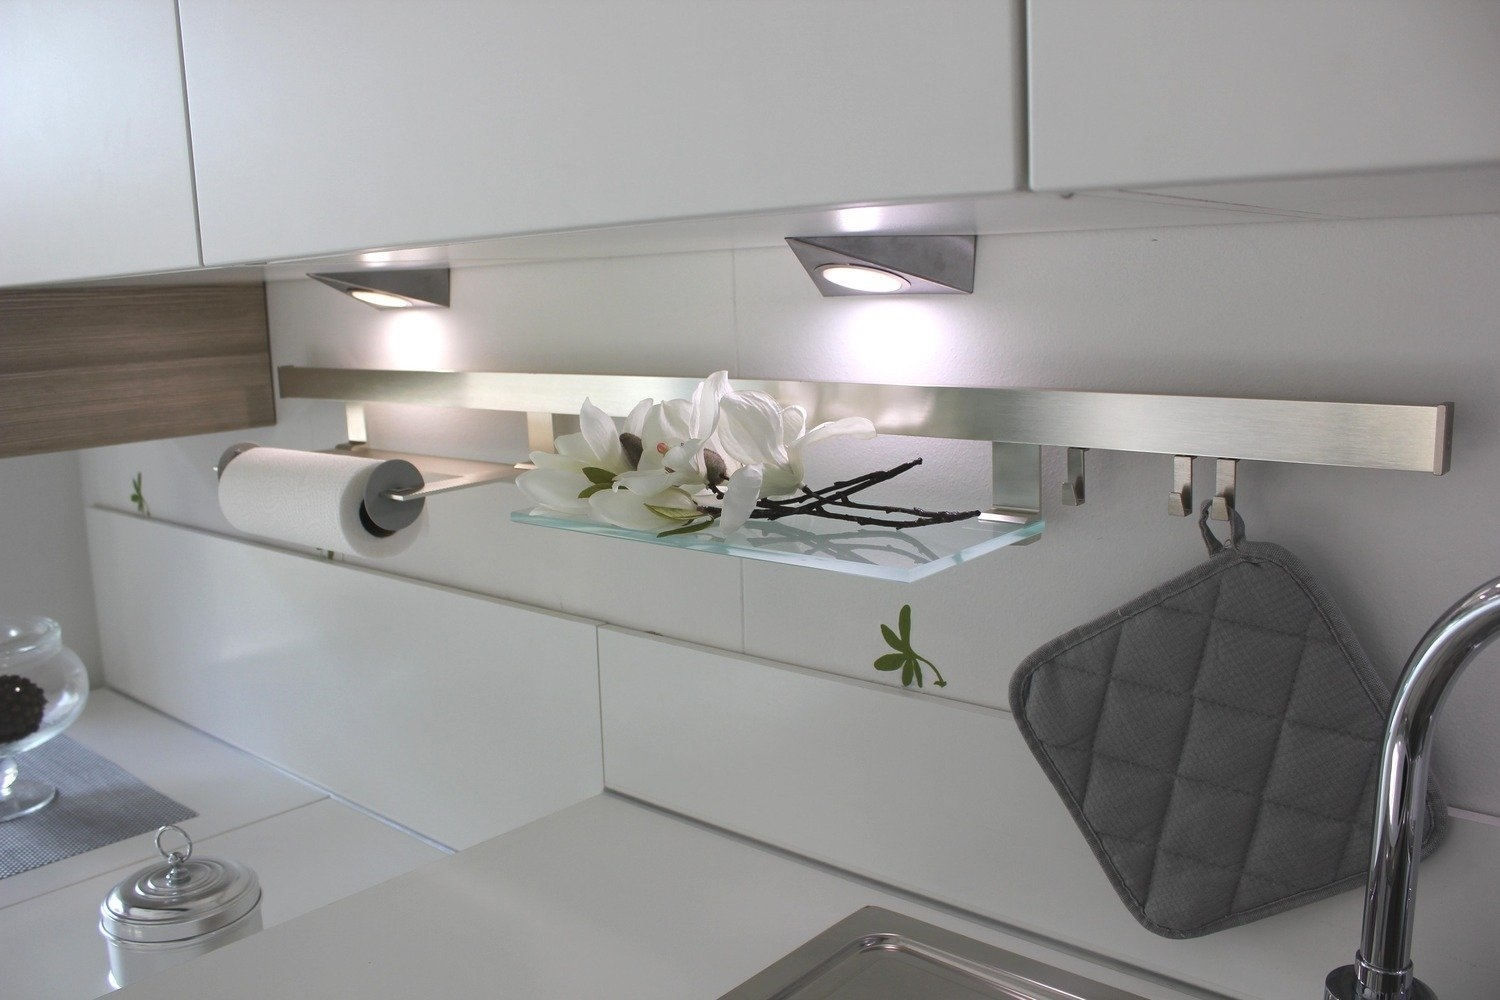 Best costo cucina scavolini pictures us with demode cucine - Dibiesse cucine opinioni ...